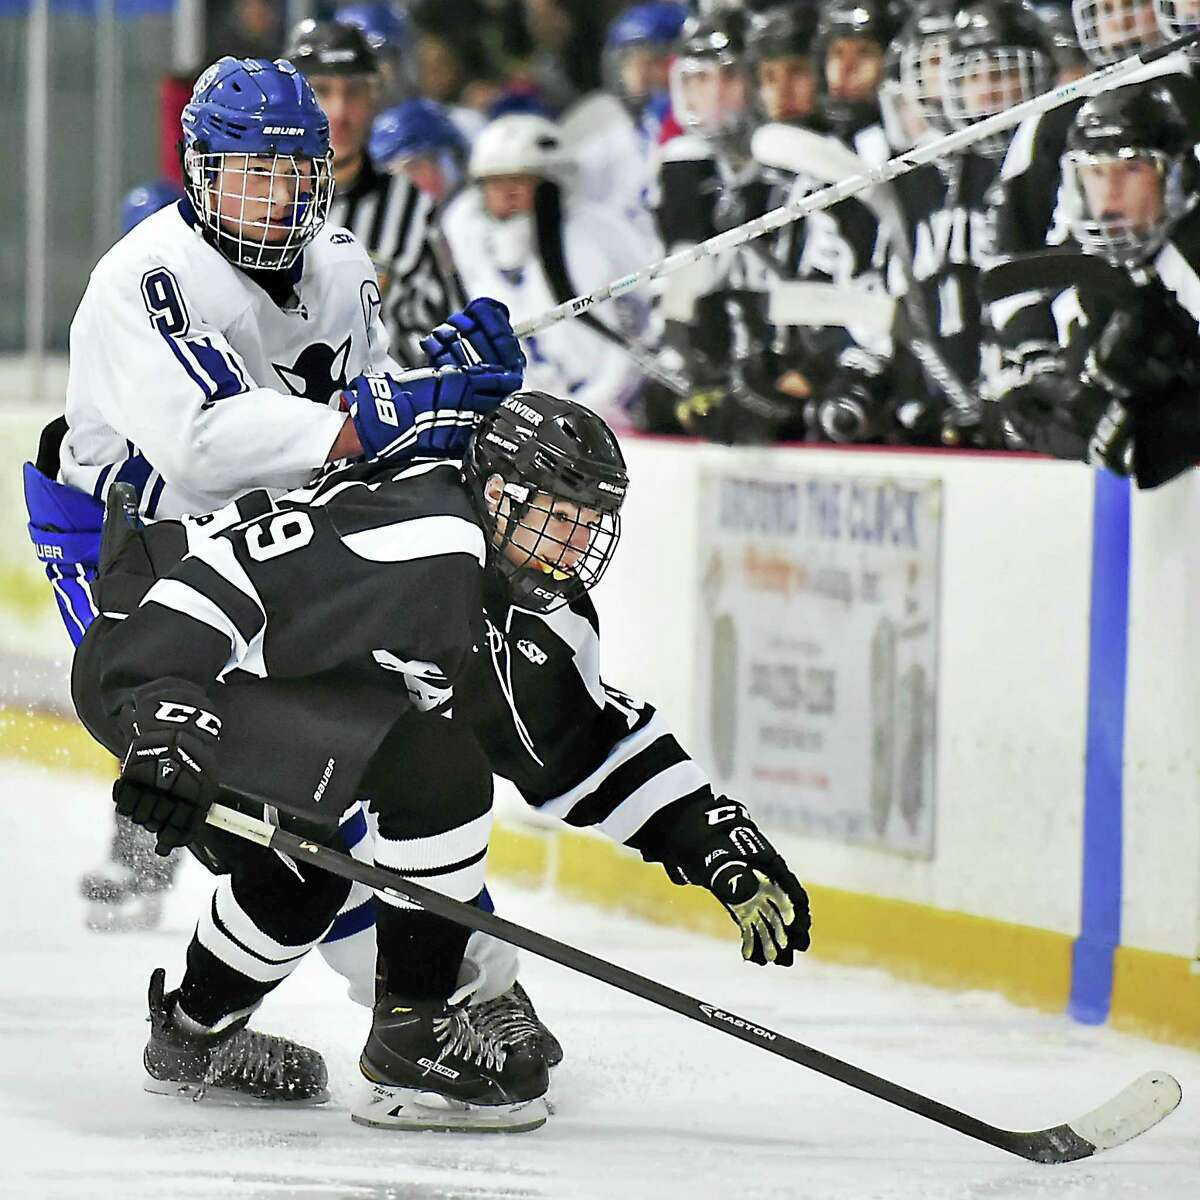 (Catherine Avalone - New Haven Register) Xavier's Jacob Monroe and West Haven's Hunter Cole in pursuit of the puck Wednesday, December 30, 2015, at the West Haven High School Christmas Tournament at the Edward L. Bennett Rink. Xavier won, 5-2.